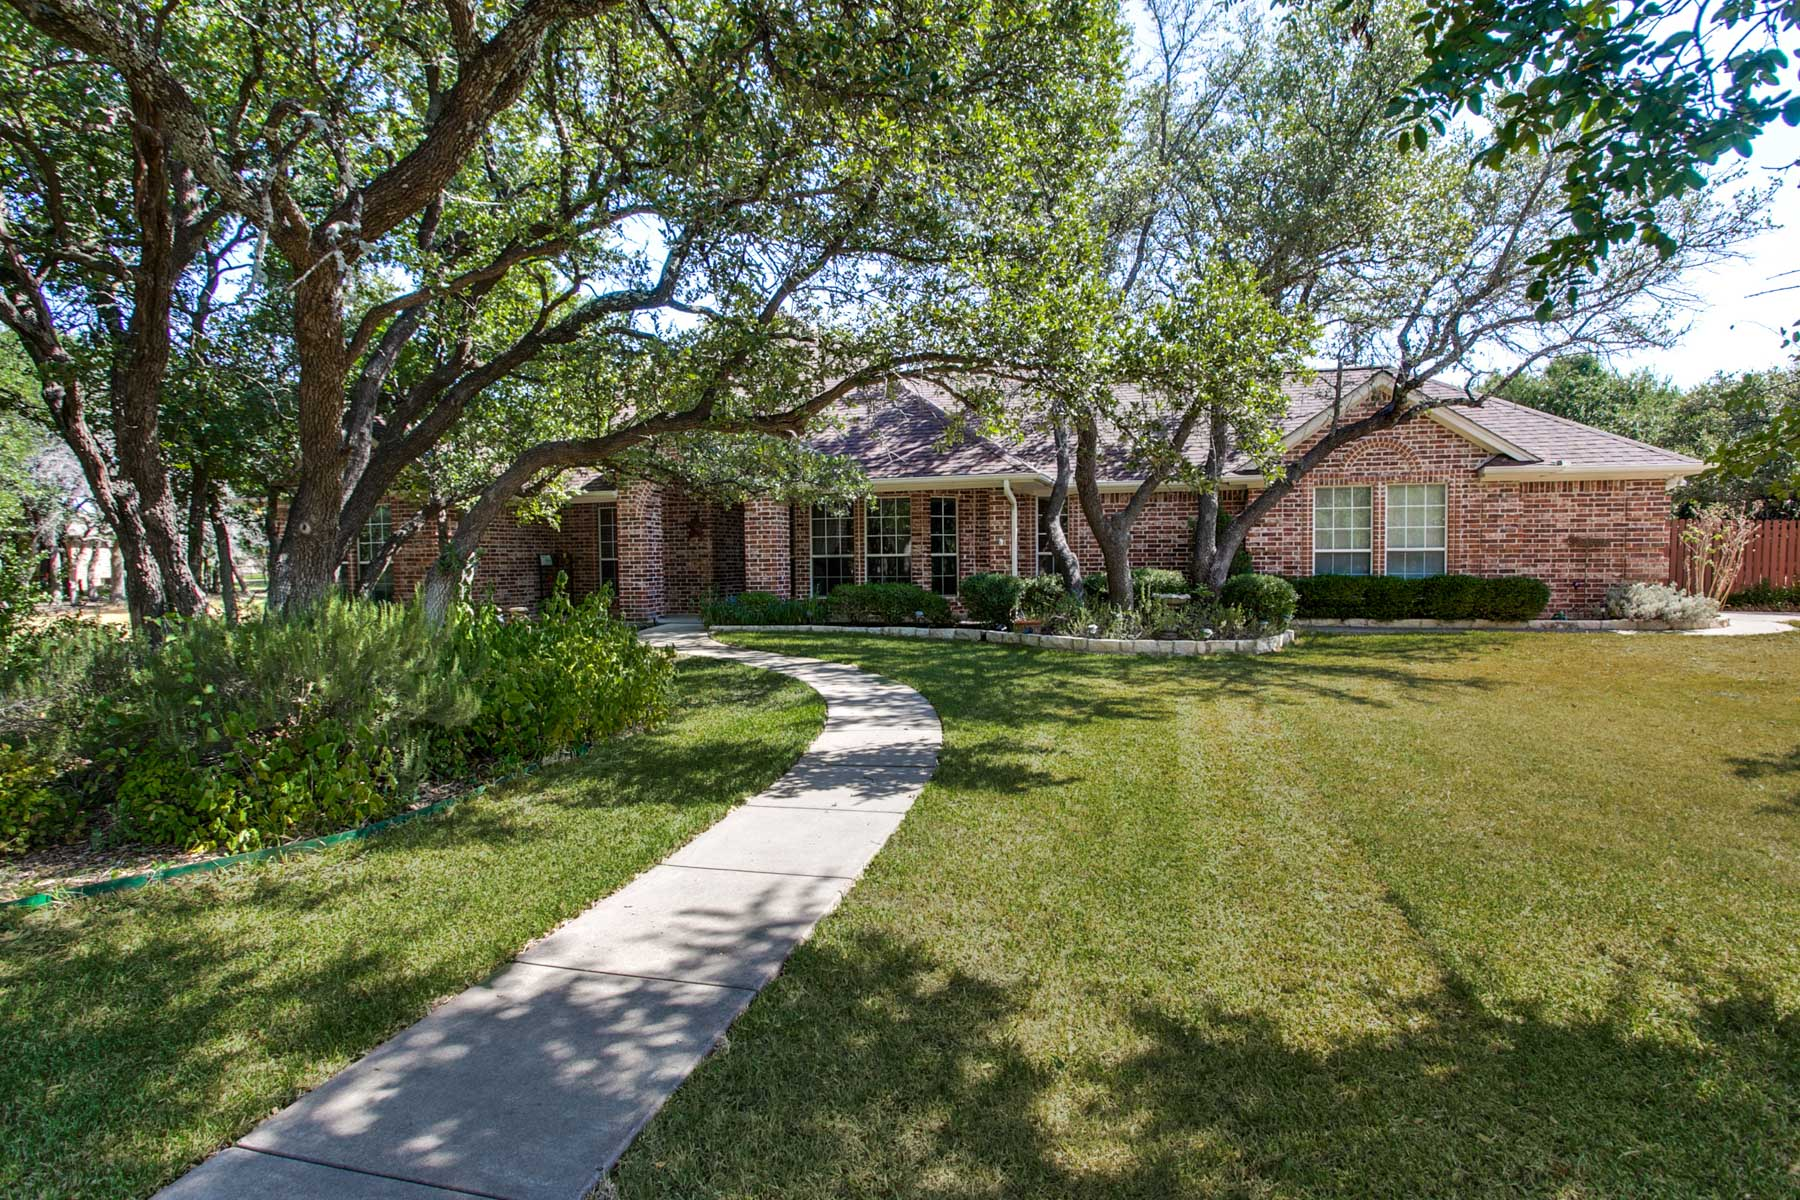 Casa Unifamiliar por un Venta en Oak Manor in Willow Park 100 Manor Ct Willow Park, Texas, 76087 Estados Unidos